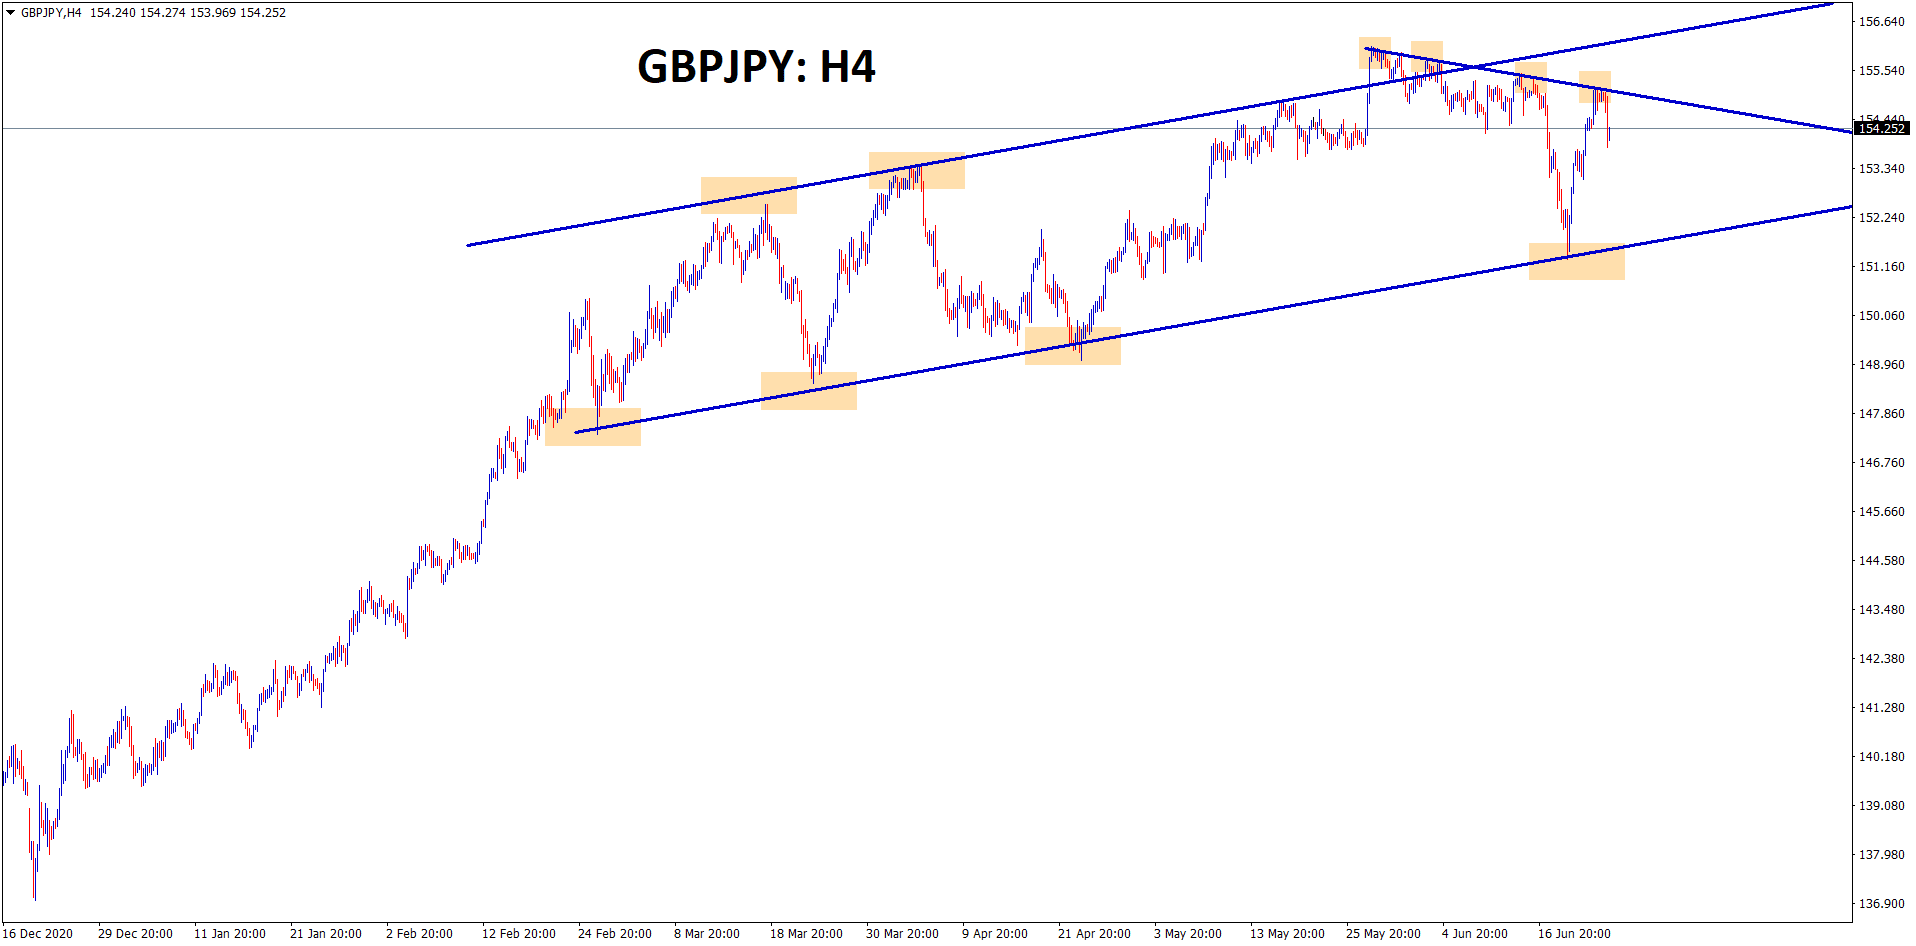 GBPJPY is moving in a Ascending channel range but still forming minor lower high levels.